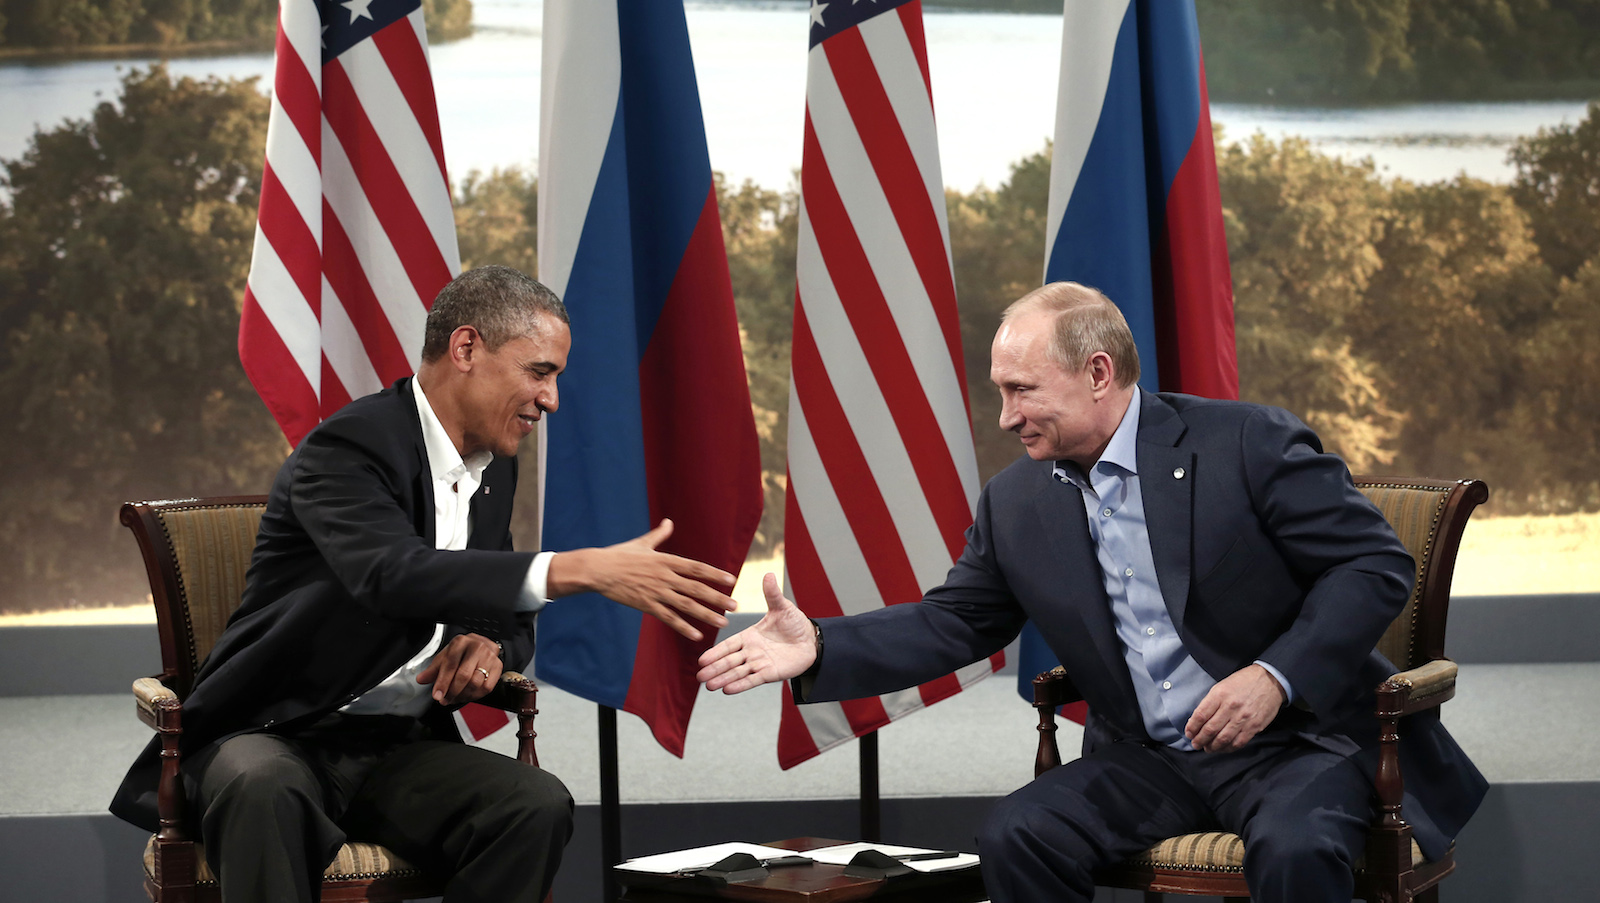 U.S. President Barack Obama and Russian President Vladimir Putin shake hands during their meeting at the G8 Summit at Lough Erne in Enniskillen, Northern Ireland June 17, 2013. REUTERS/Kevin Lamarque (NORTHERN IRELAND - Tags: POLITICS) - RTX10R95